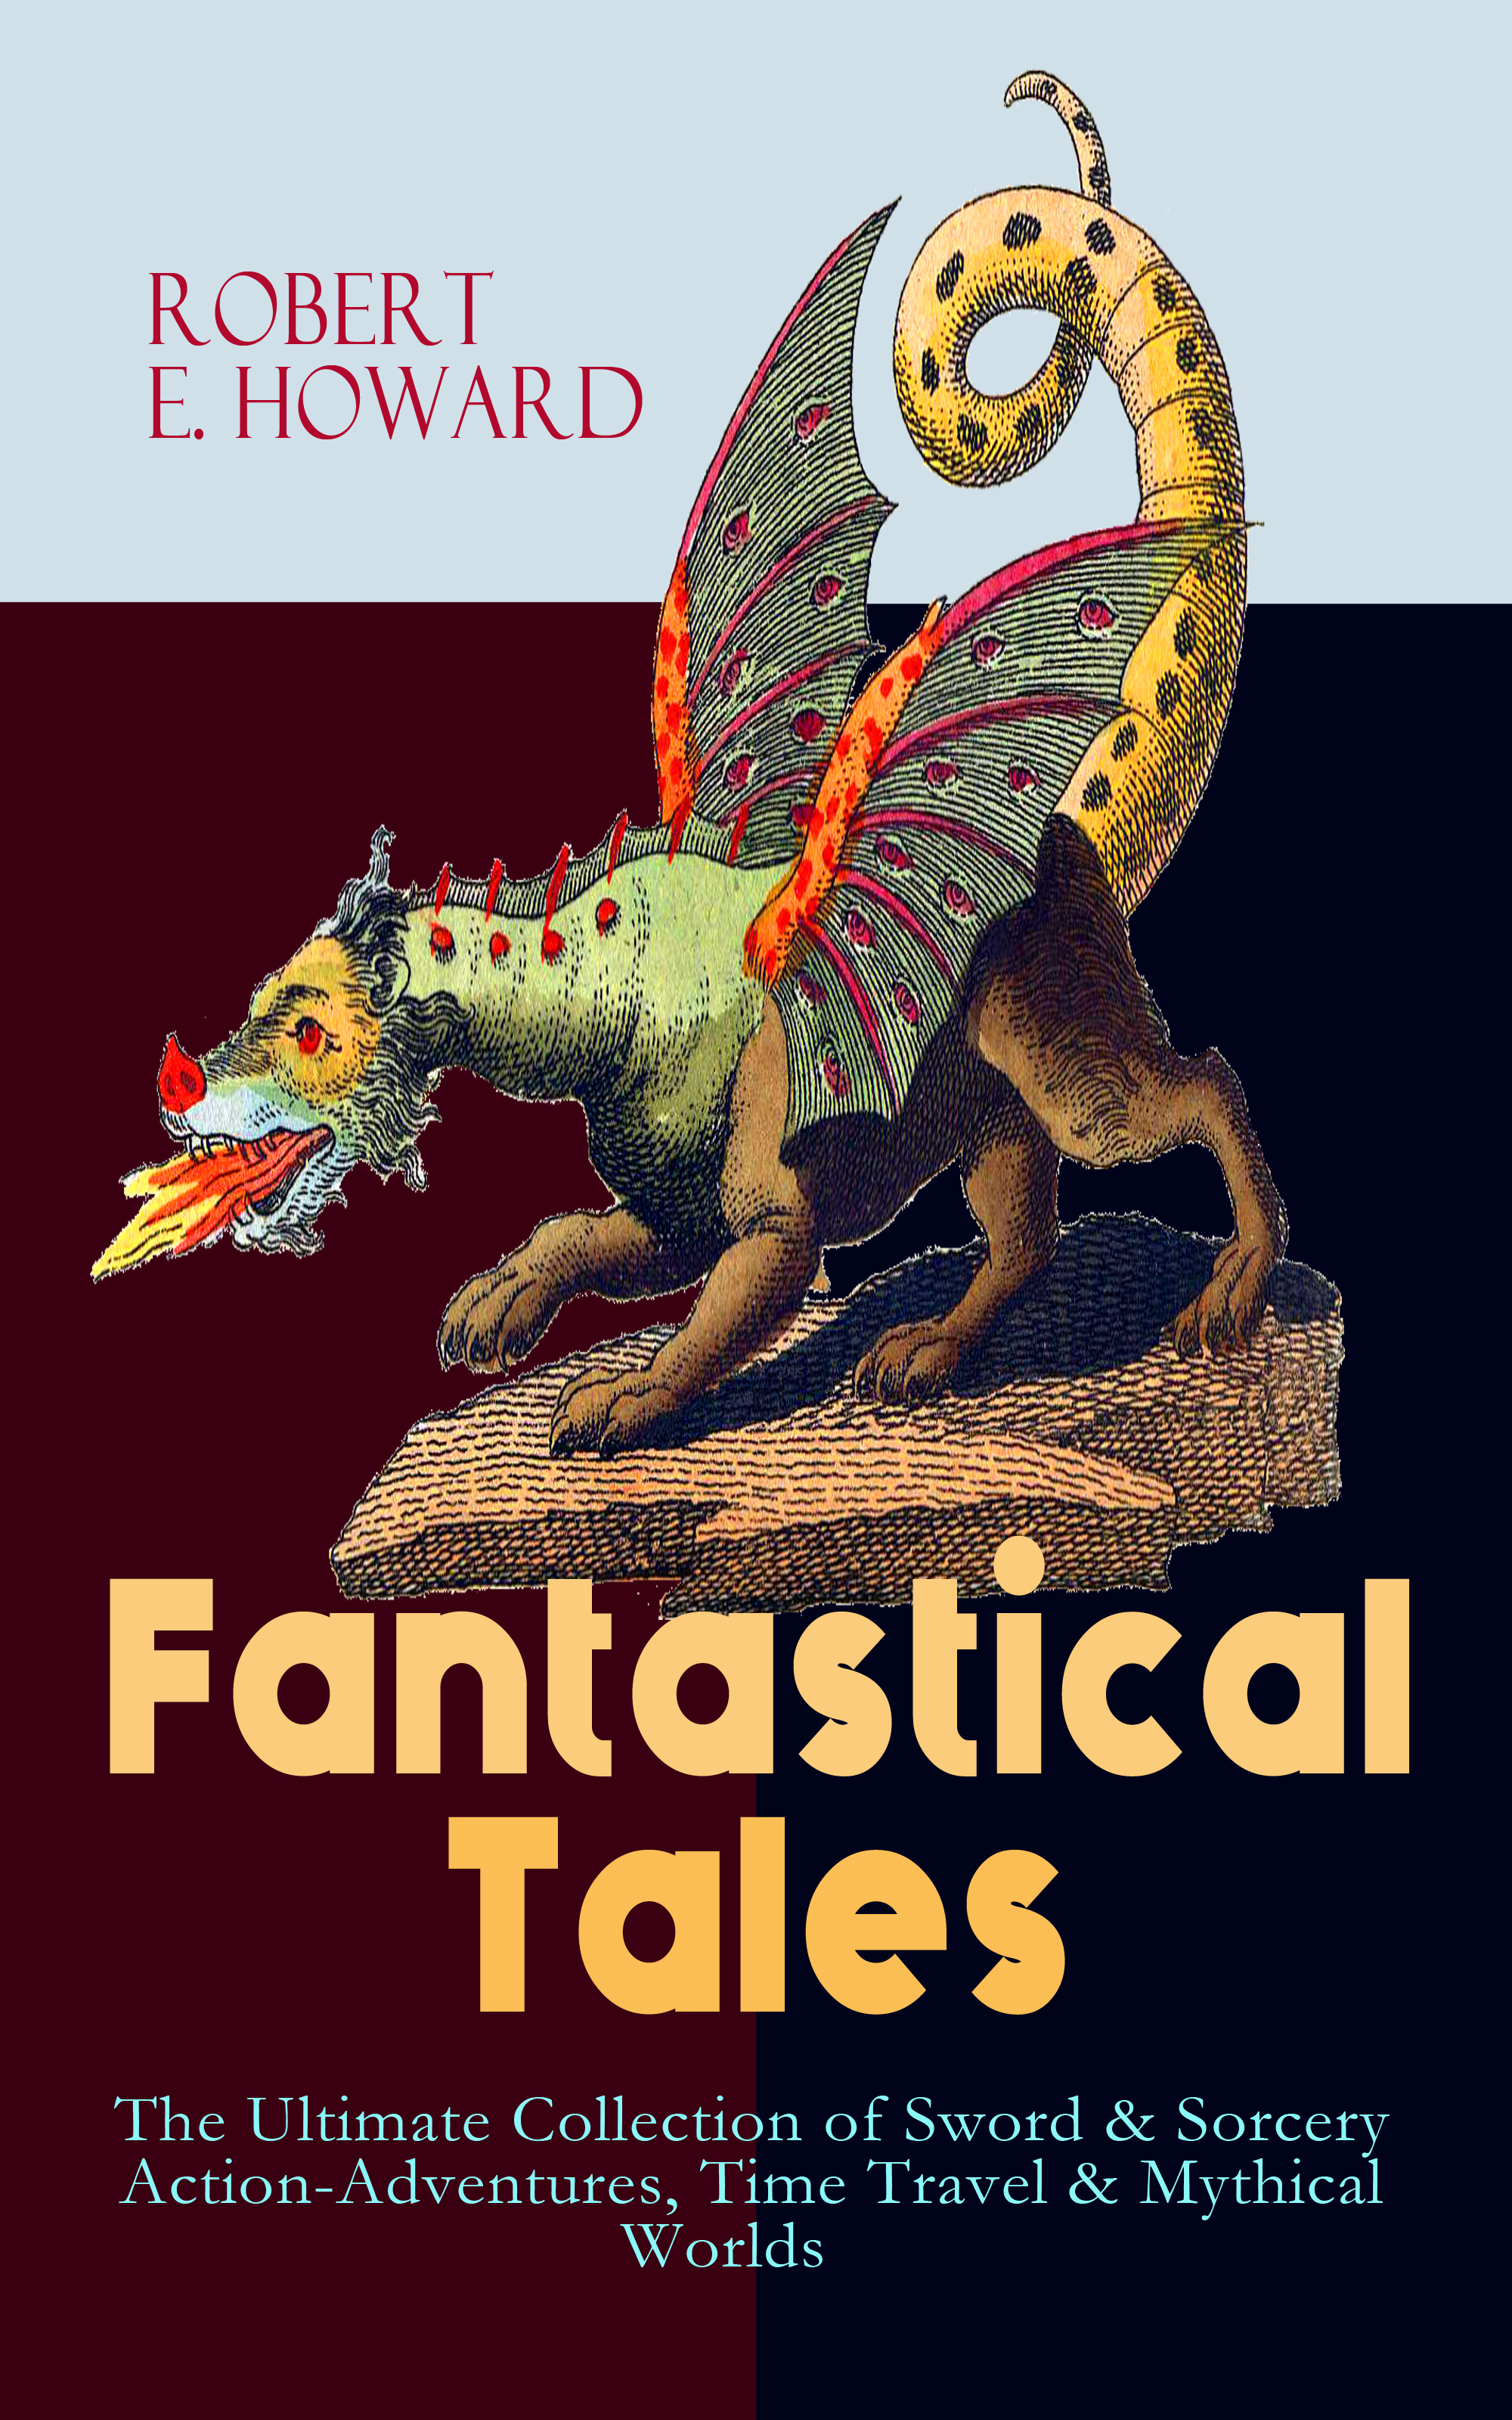 Robert E. Howard Fantastical Tales - The Ultimate Collection of Sword & Sorcery Action-Adventures, Time Travel & Mythical Worlds cd sweet action the ultimate story